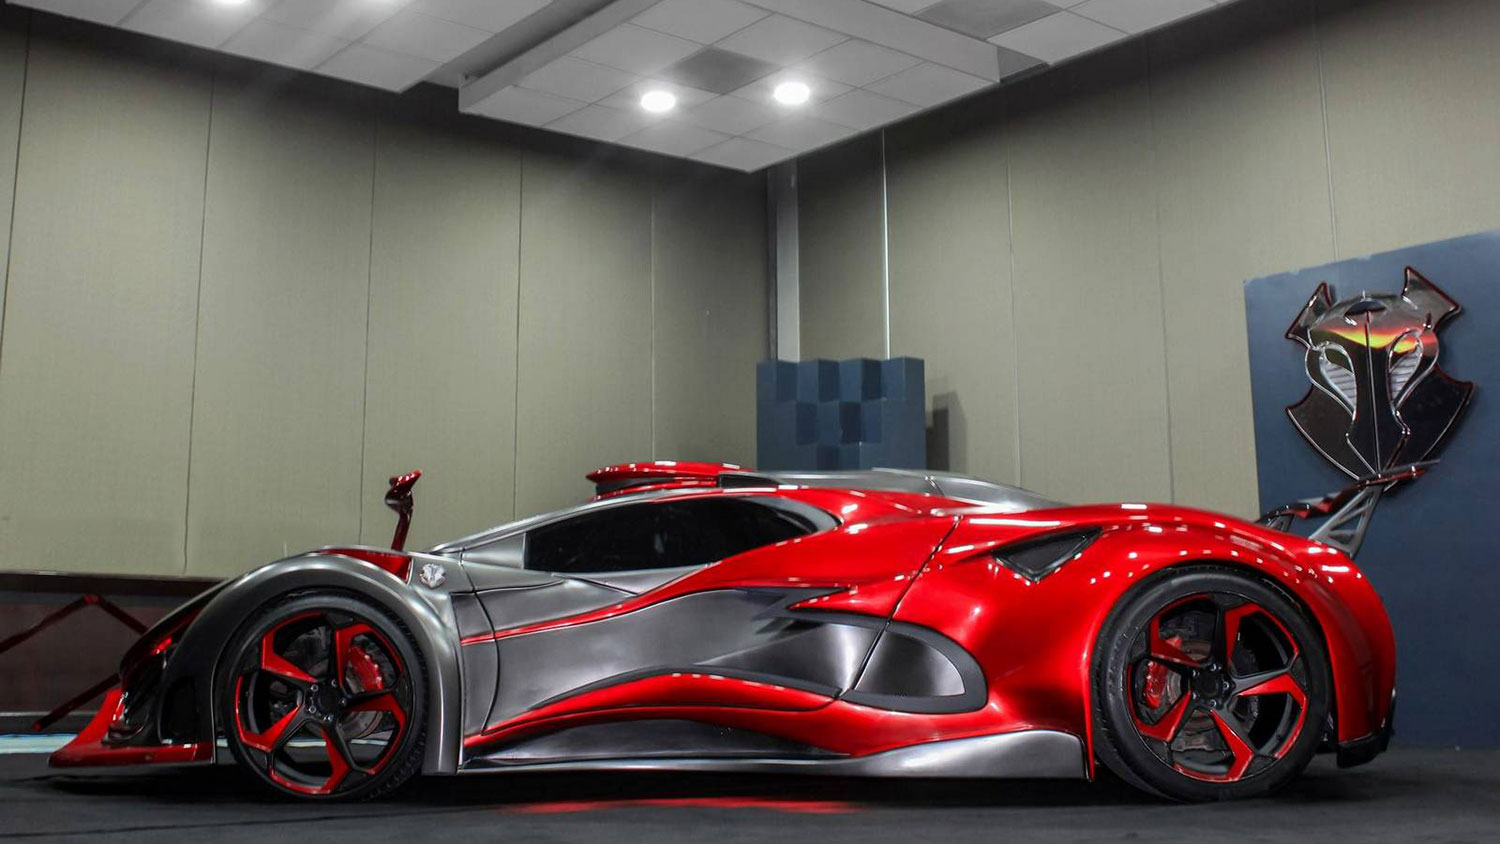 Metal Foam Makes Mexico S Inferno Hypercar Fast Furious Slightly